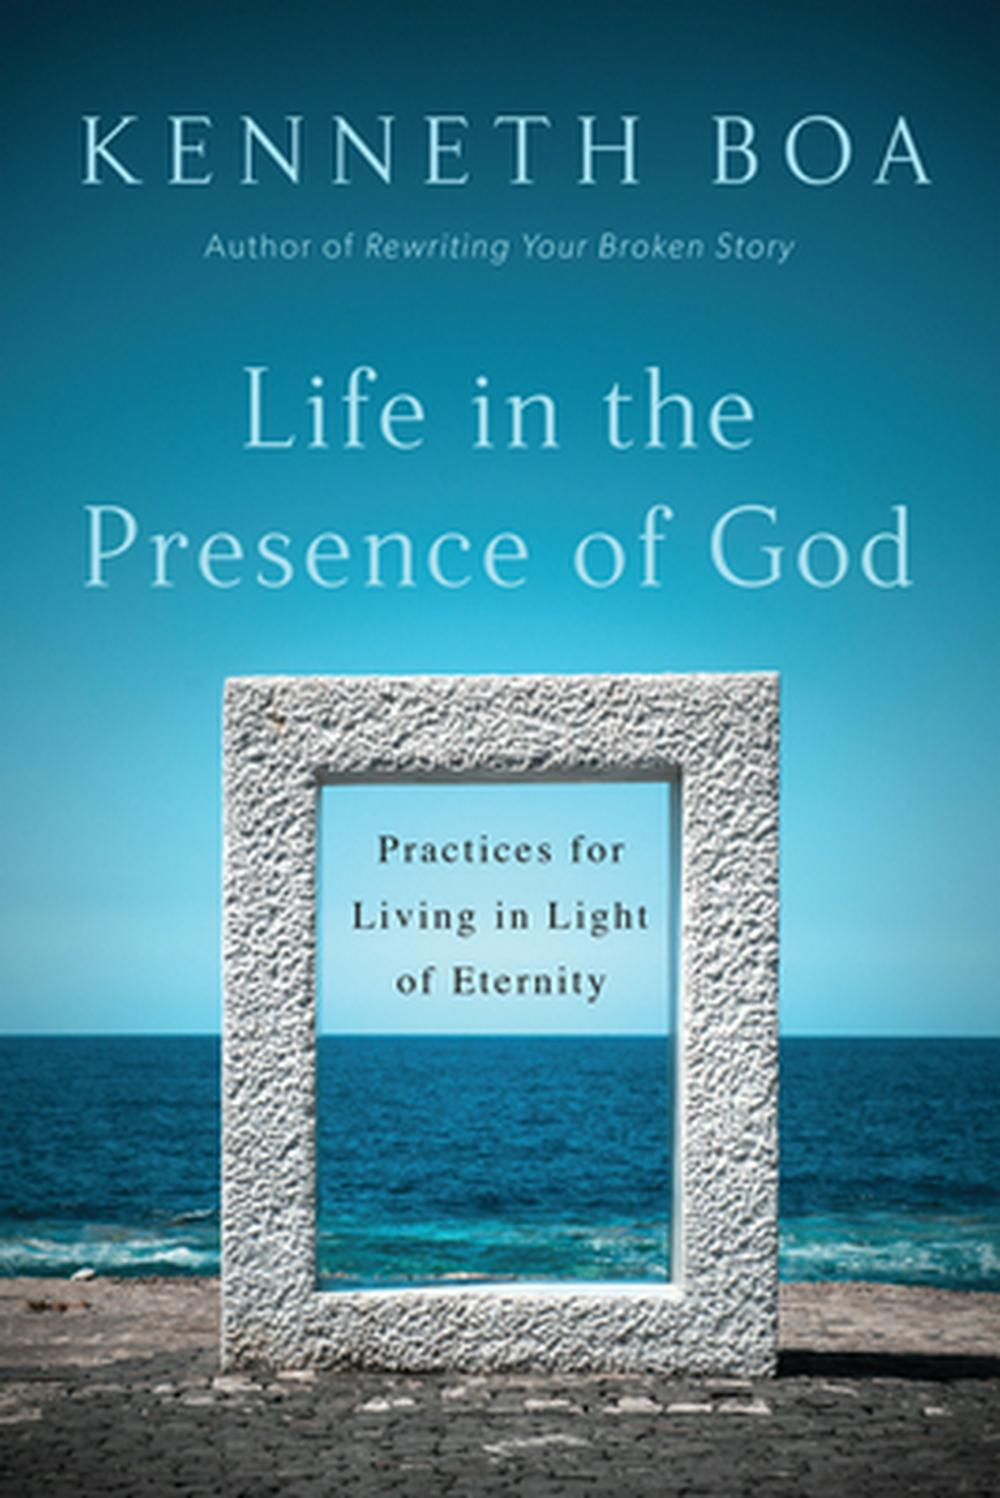 Life in the Presence of GodPractices for Living in Light of Eternity